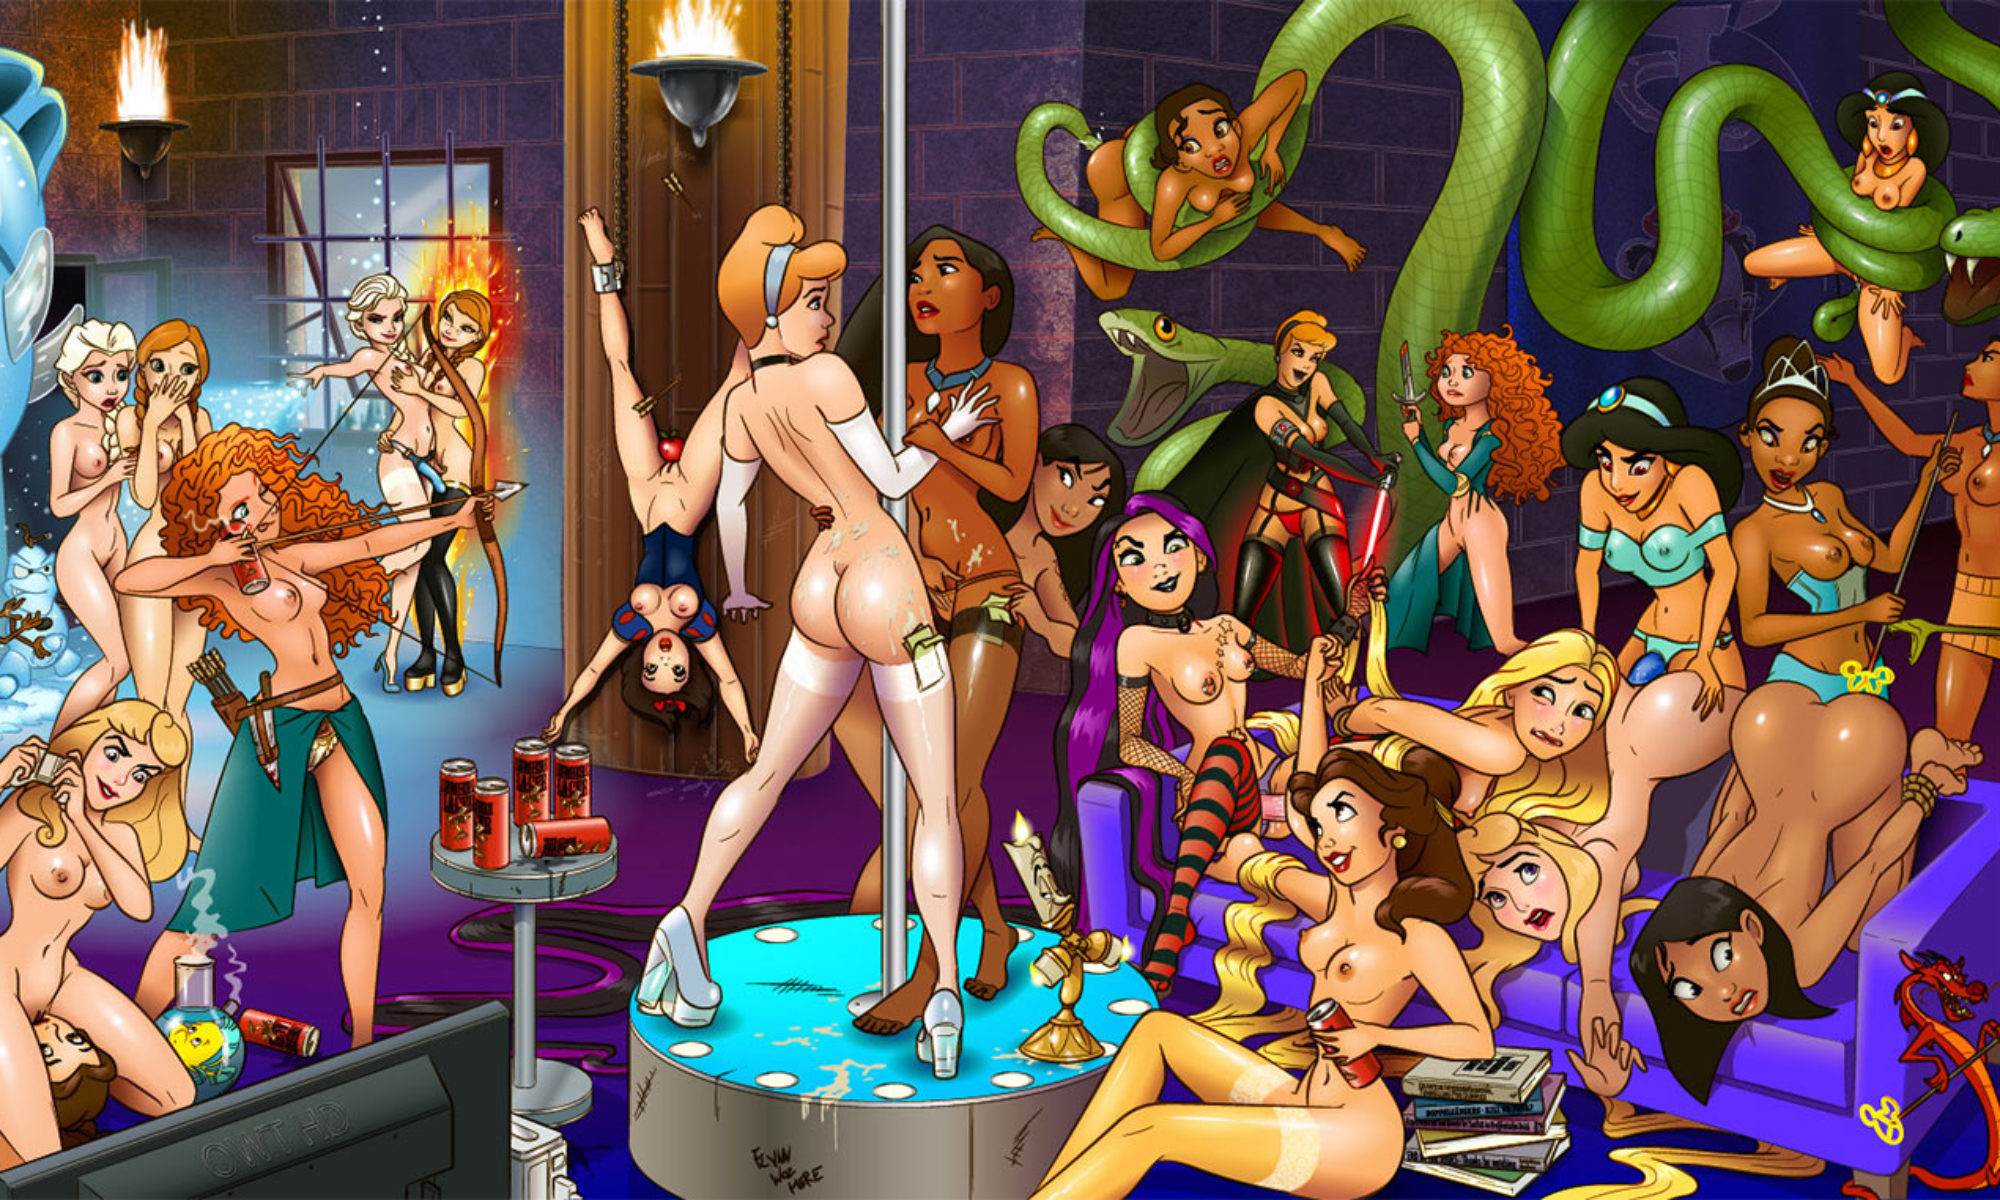 Disney porn: Exclusive disney sex pictures and videos